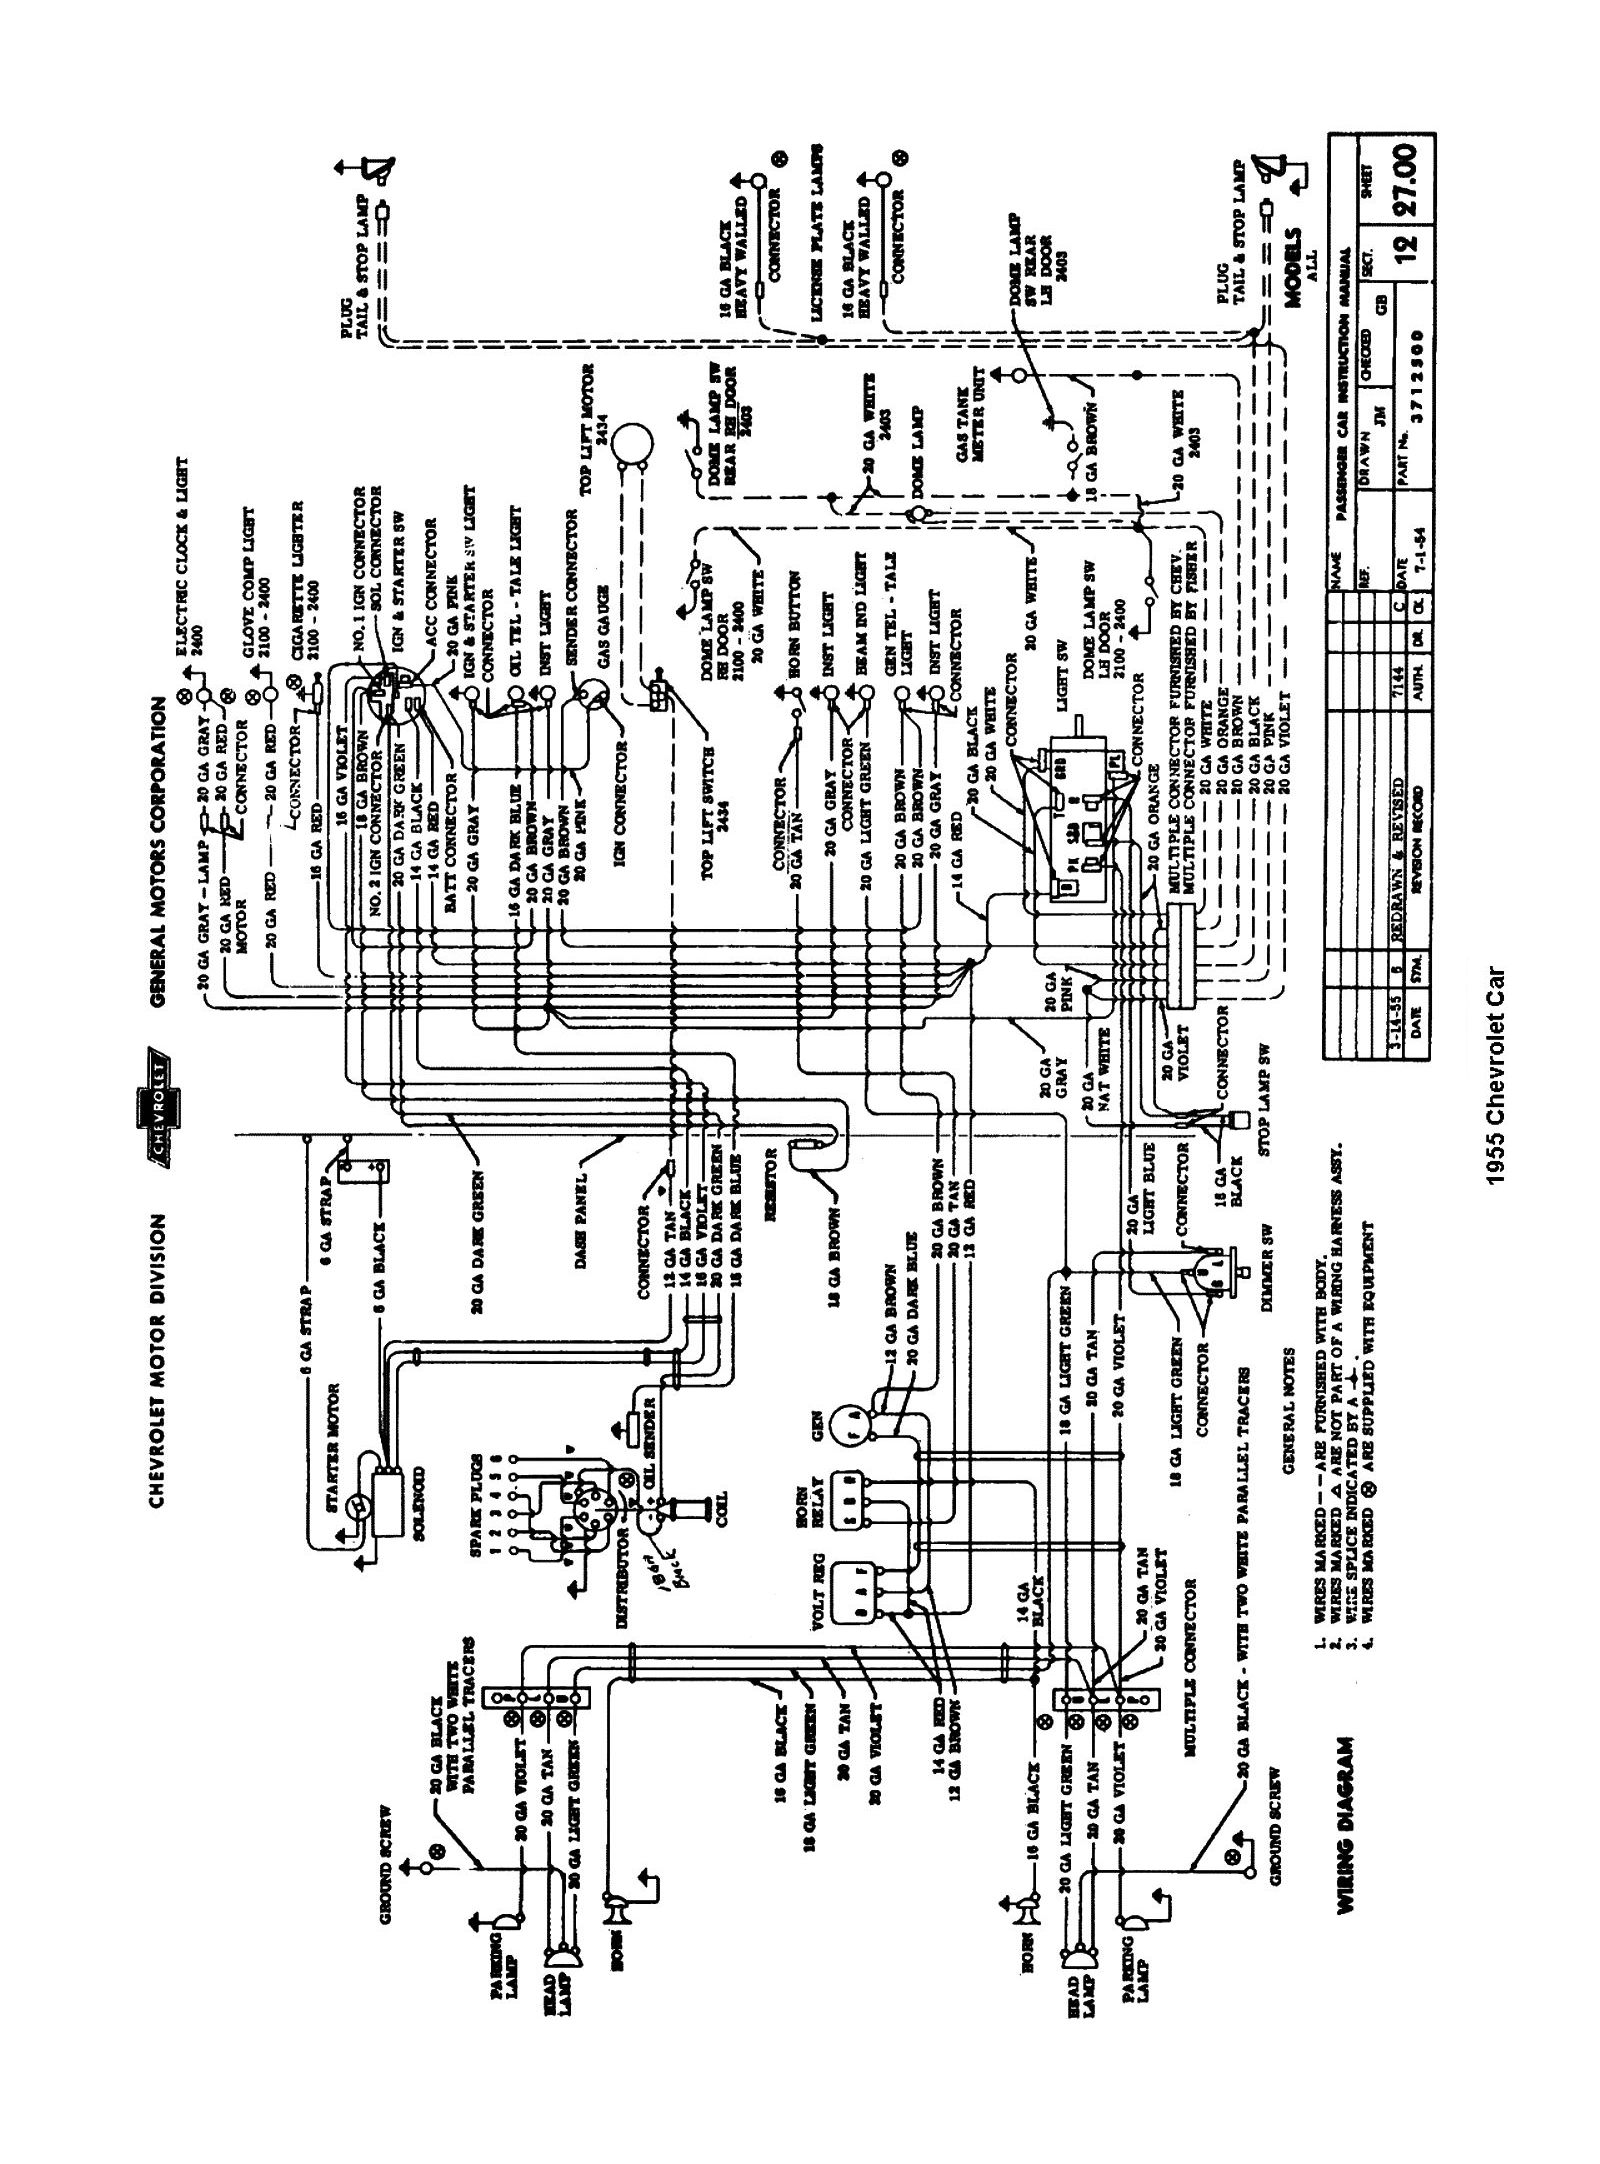 wiring diagram for 1955 chevy truck new wiring diagrams 1955 chevy spark plug wiring diagram